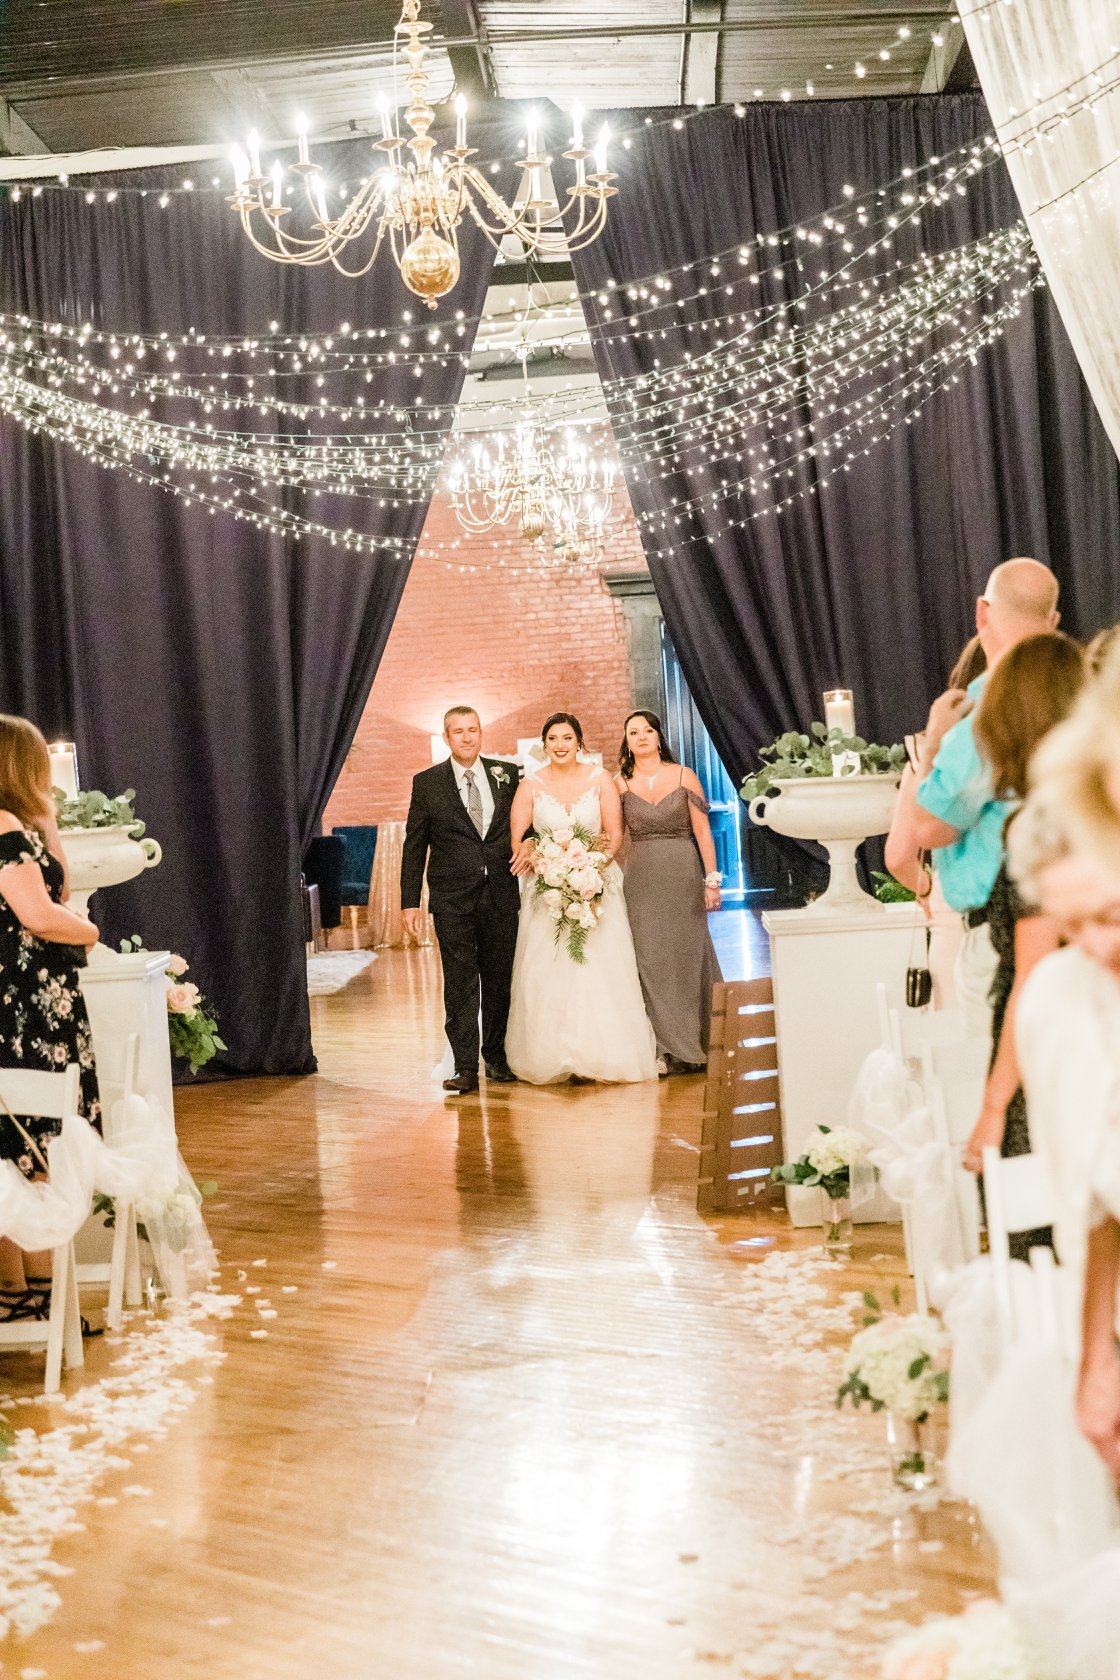 Love the dramatic ceremony entrance